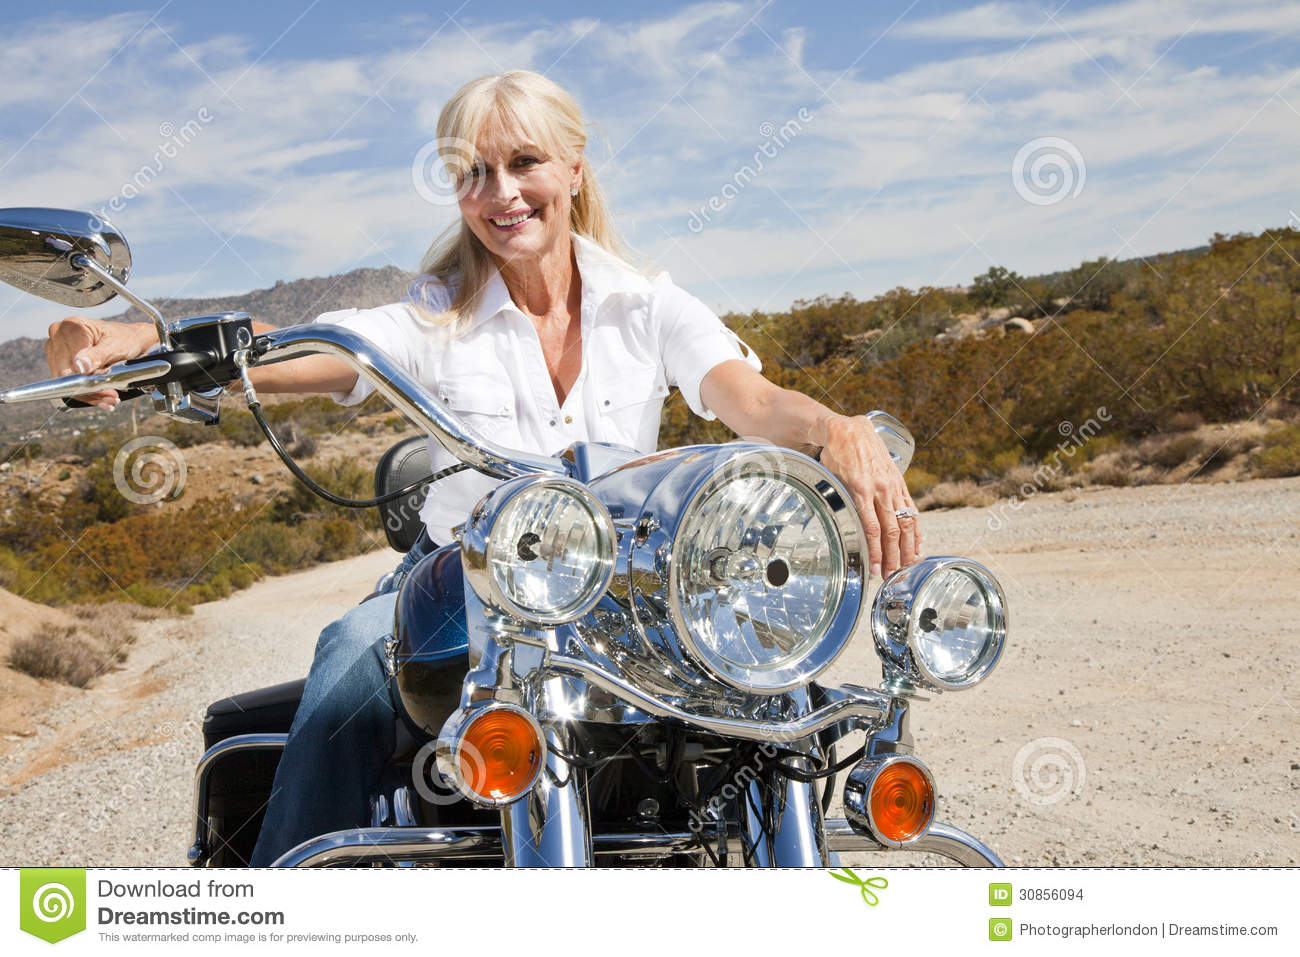 motorcycle girl desert nude